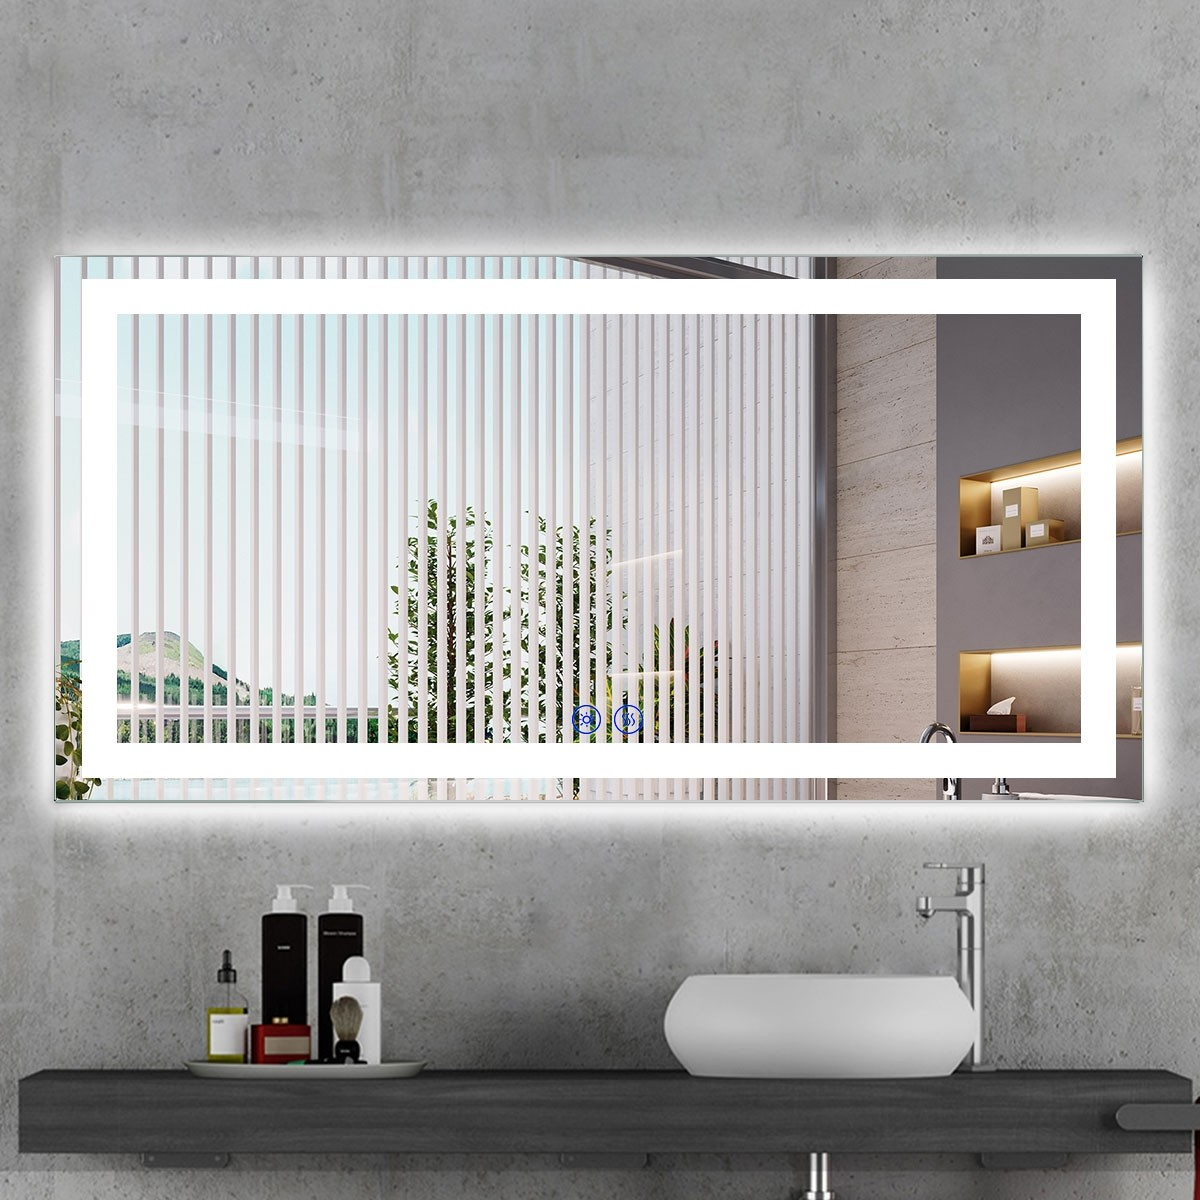 DECORAPORT 55 x 28 Inch LED Bathroom Mirror/Dress Mirror with Touch Button, Anti Fog, Dimmable, Vertical & Horizontal Mount (CT06-5528)